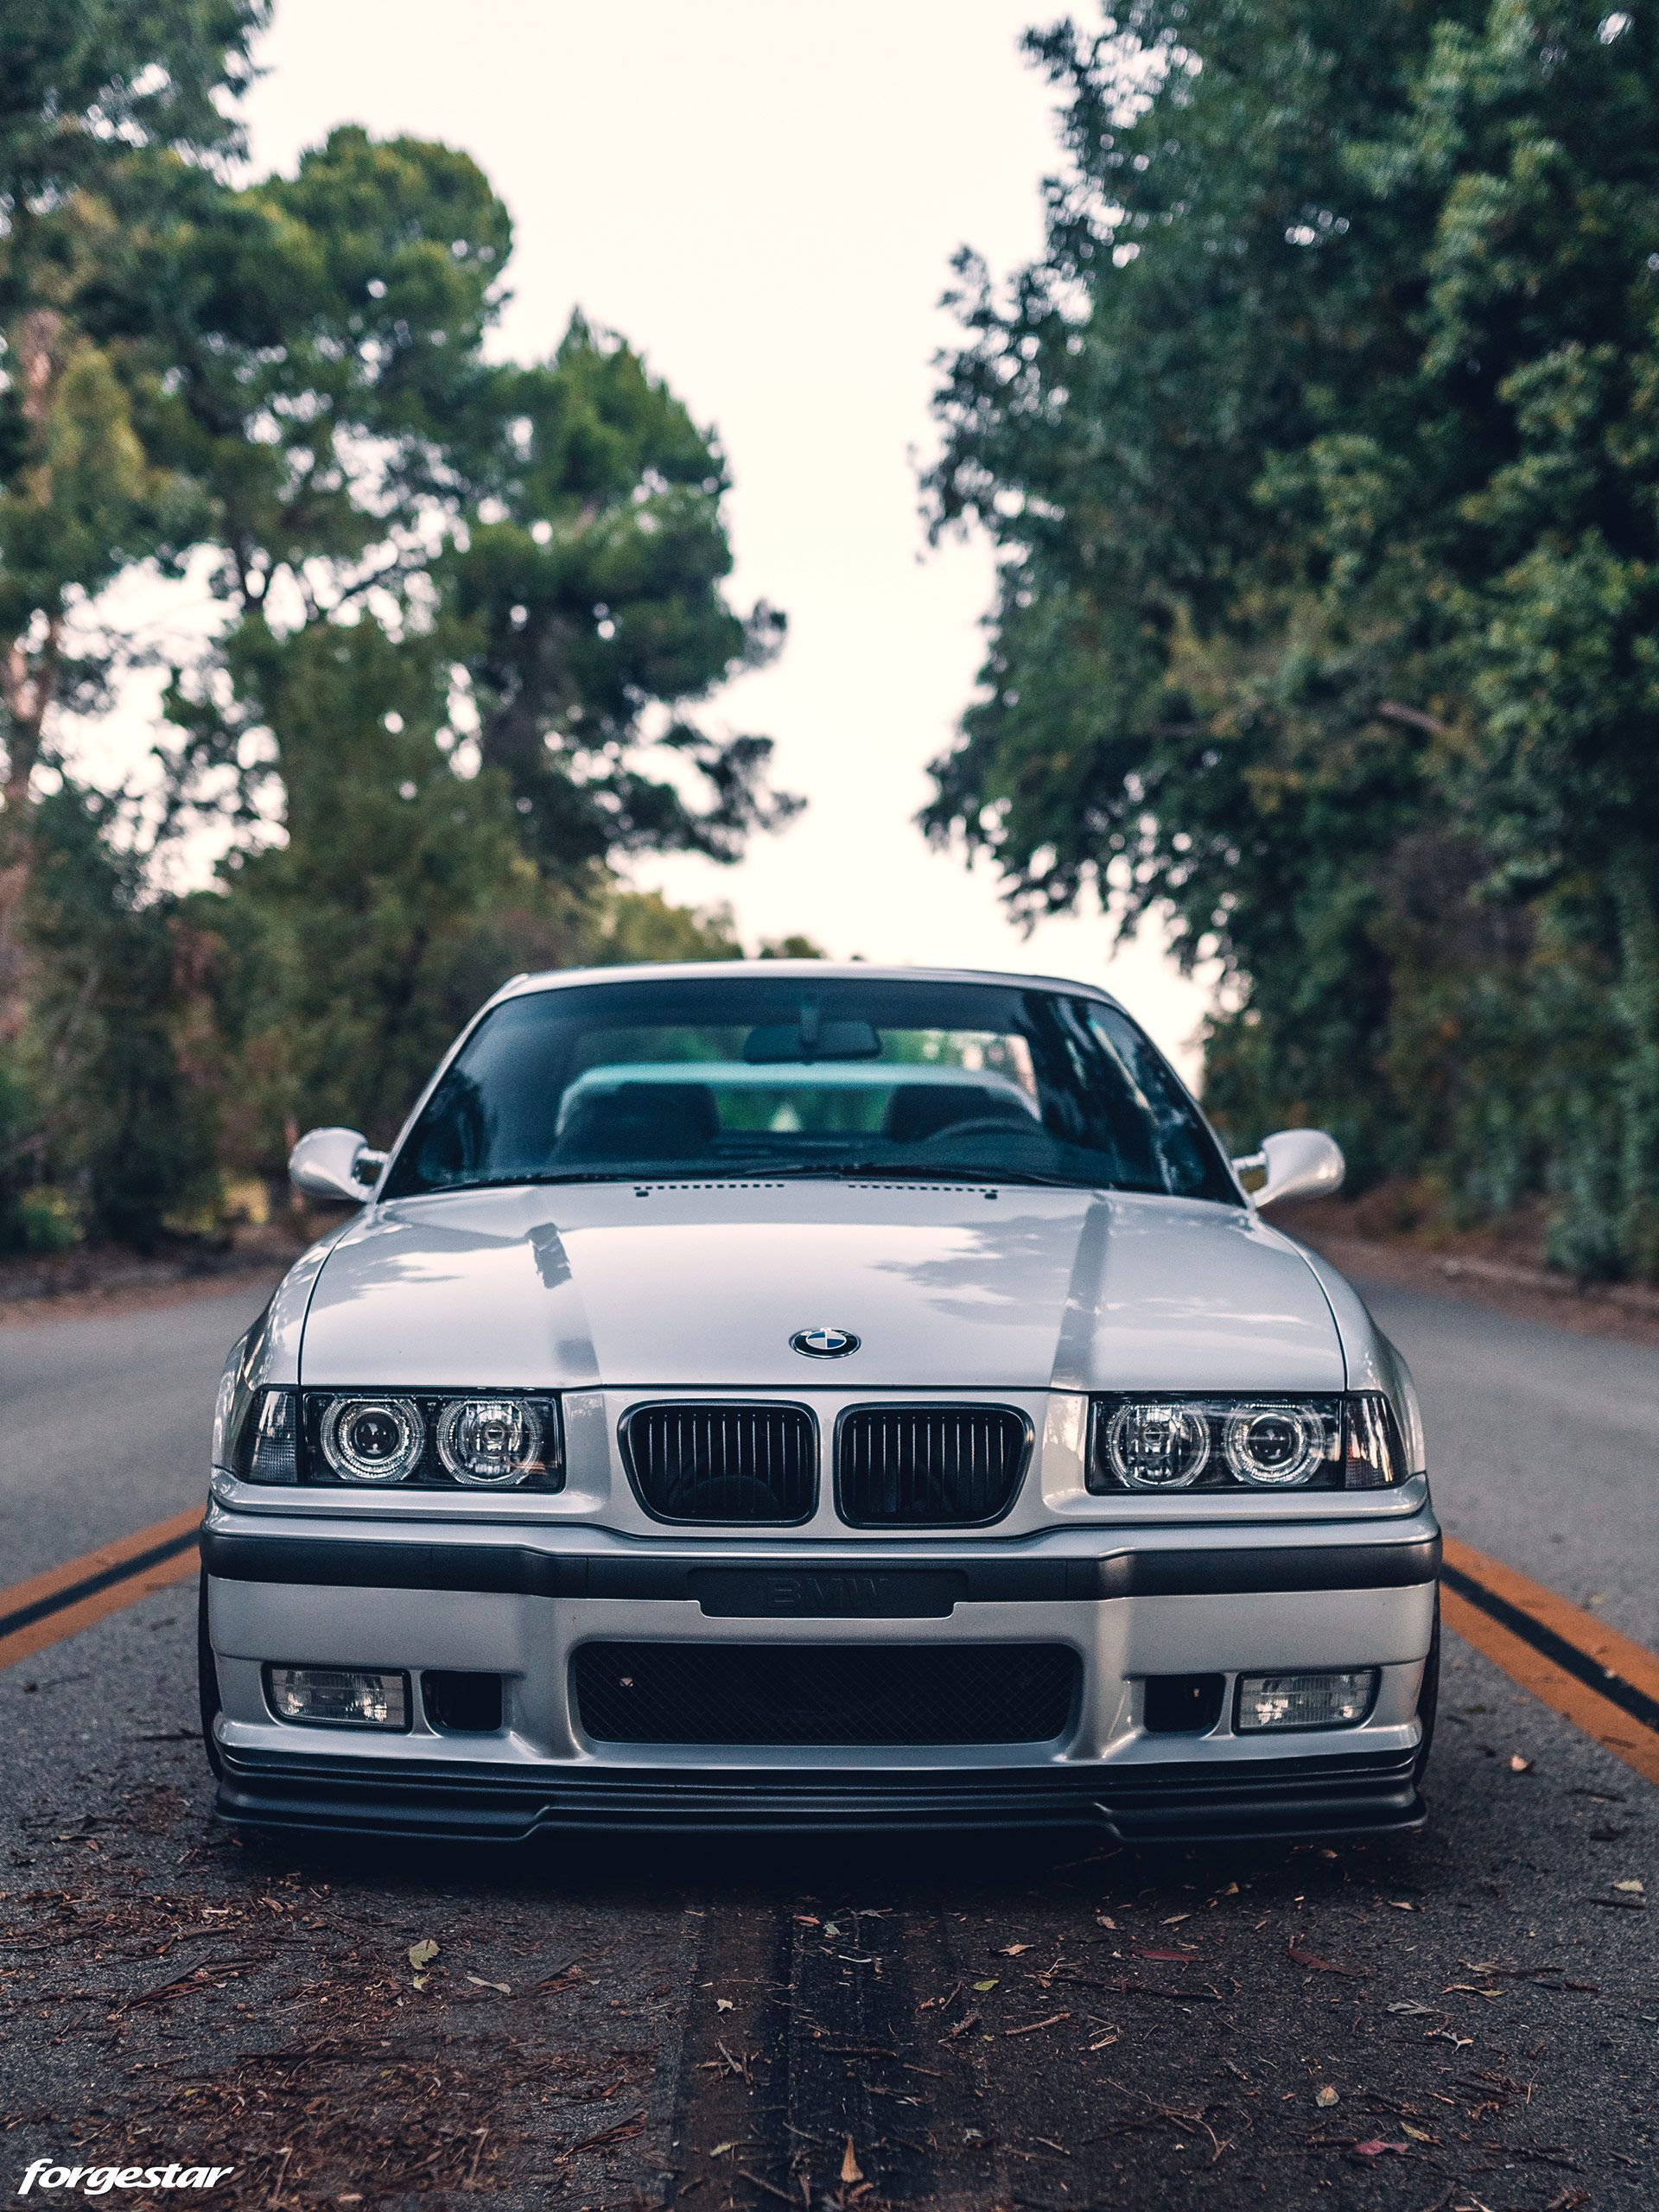 Clean Artic Silver Bmw E36 M3 With Aftermarket Mods And Wheels Bmw E36 M3 Bmw Bmw E36